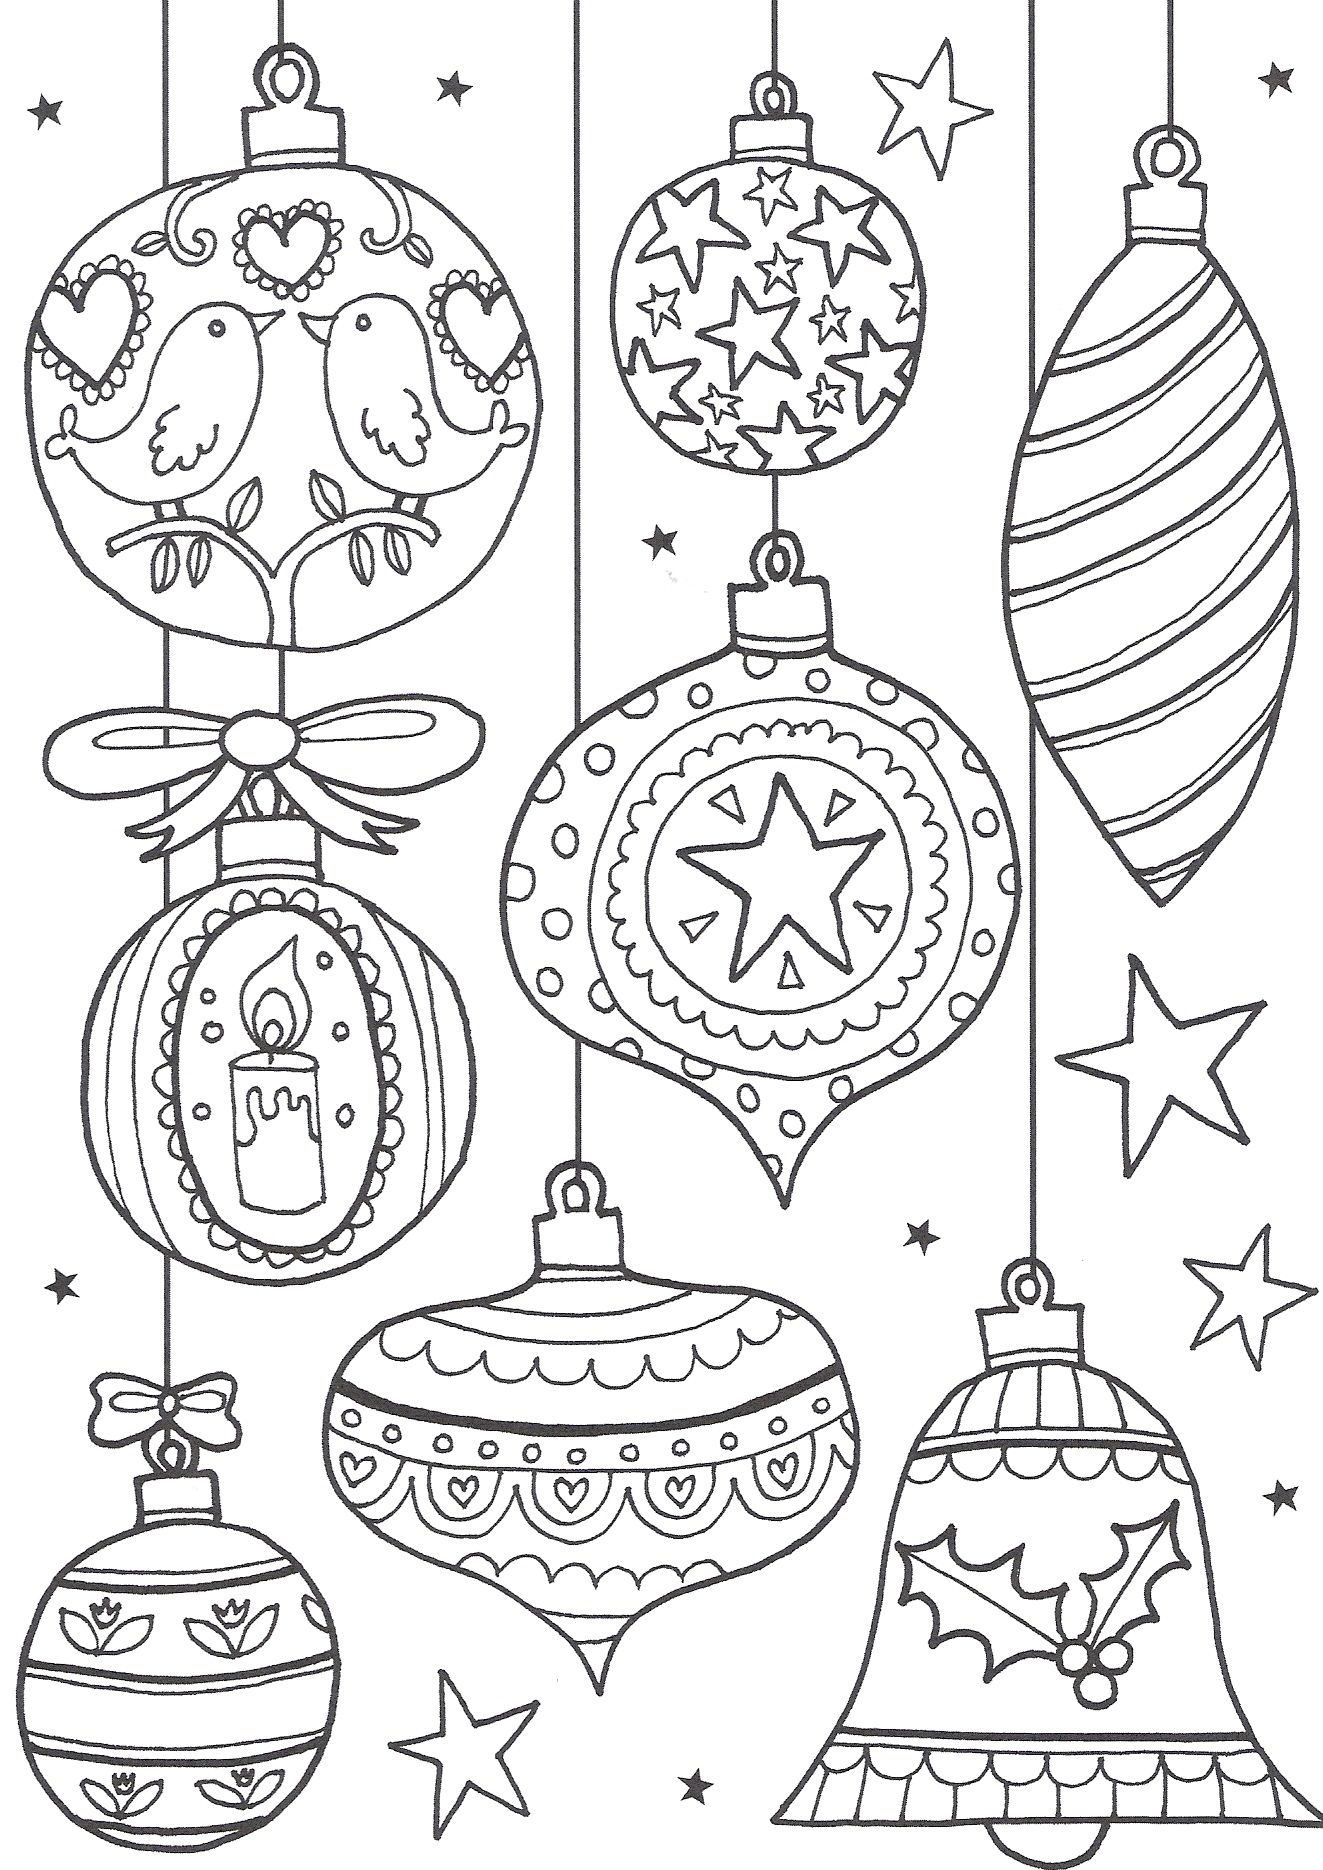 Christmas Coloring Pages For Seniors With Free Colouring Adults The Ultimate Roundup